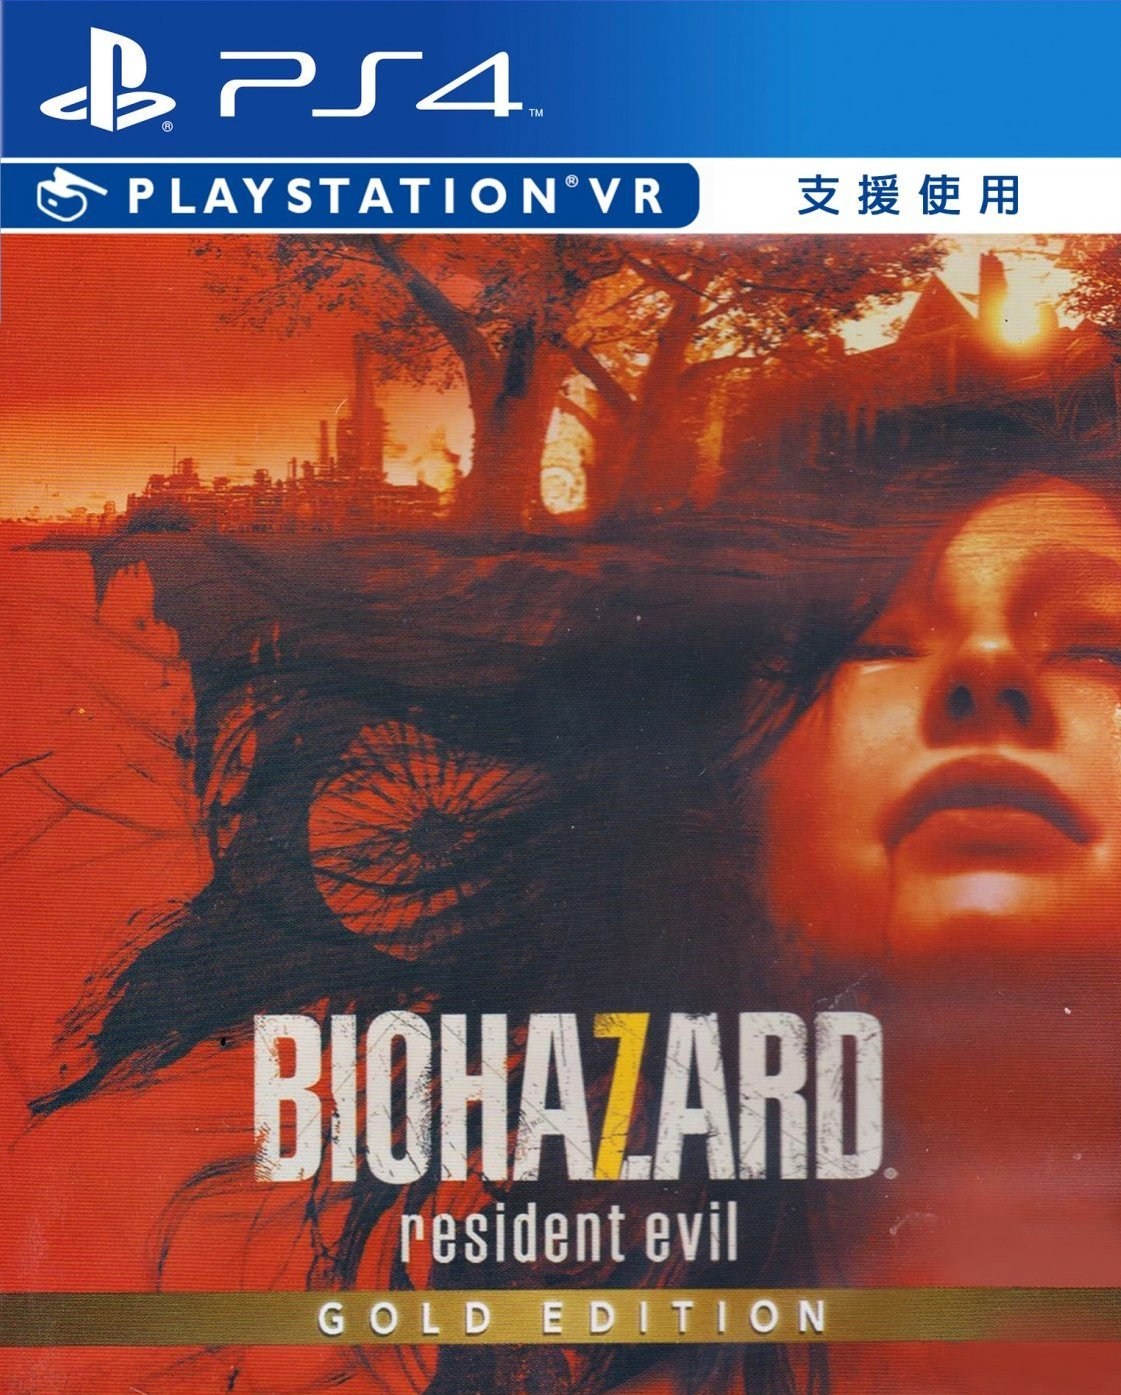 Ps4 Resident Evil 7 Biohazard Gold Edition Game Academia